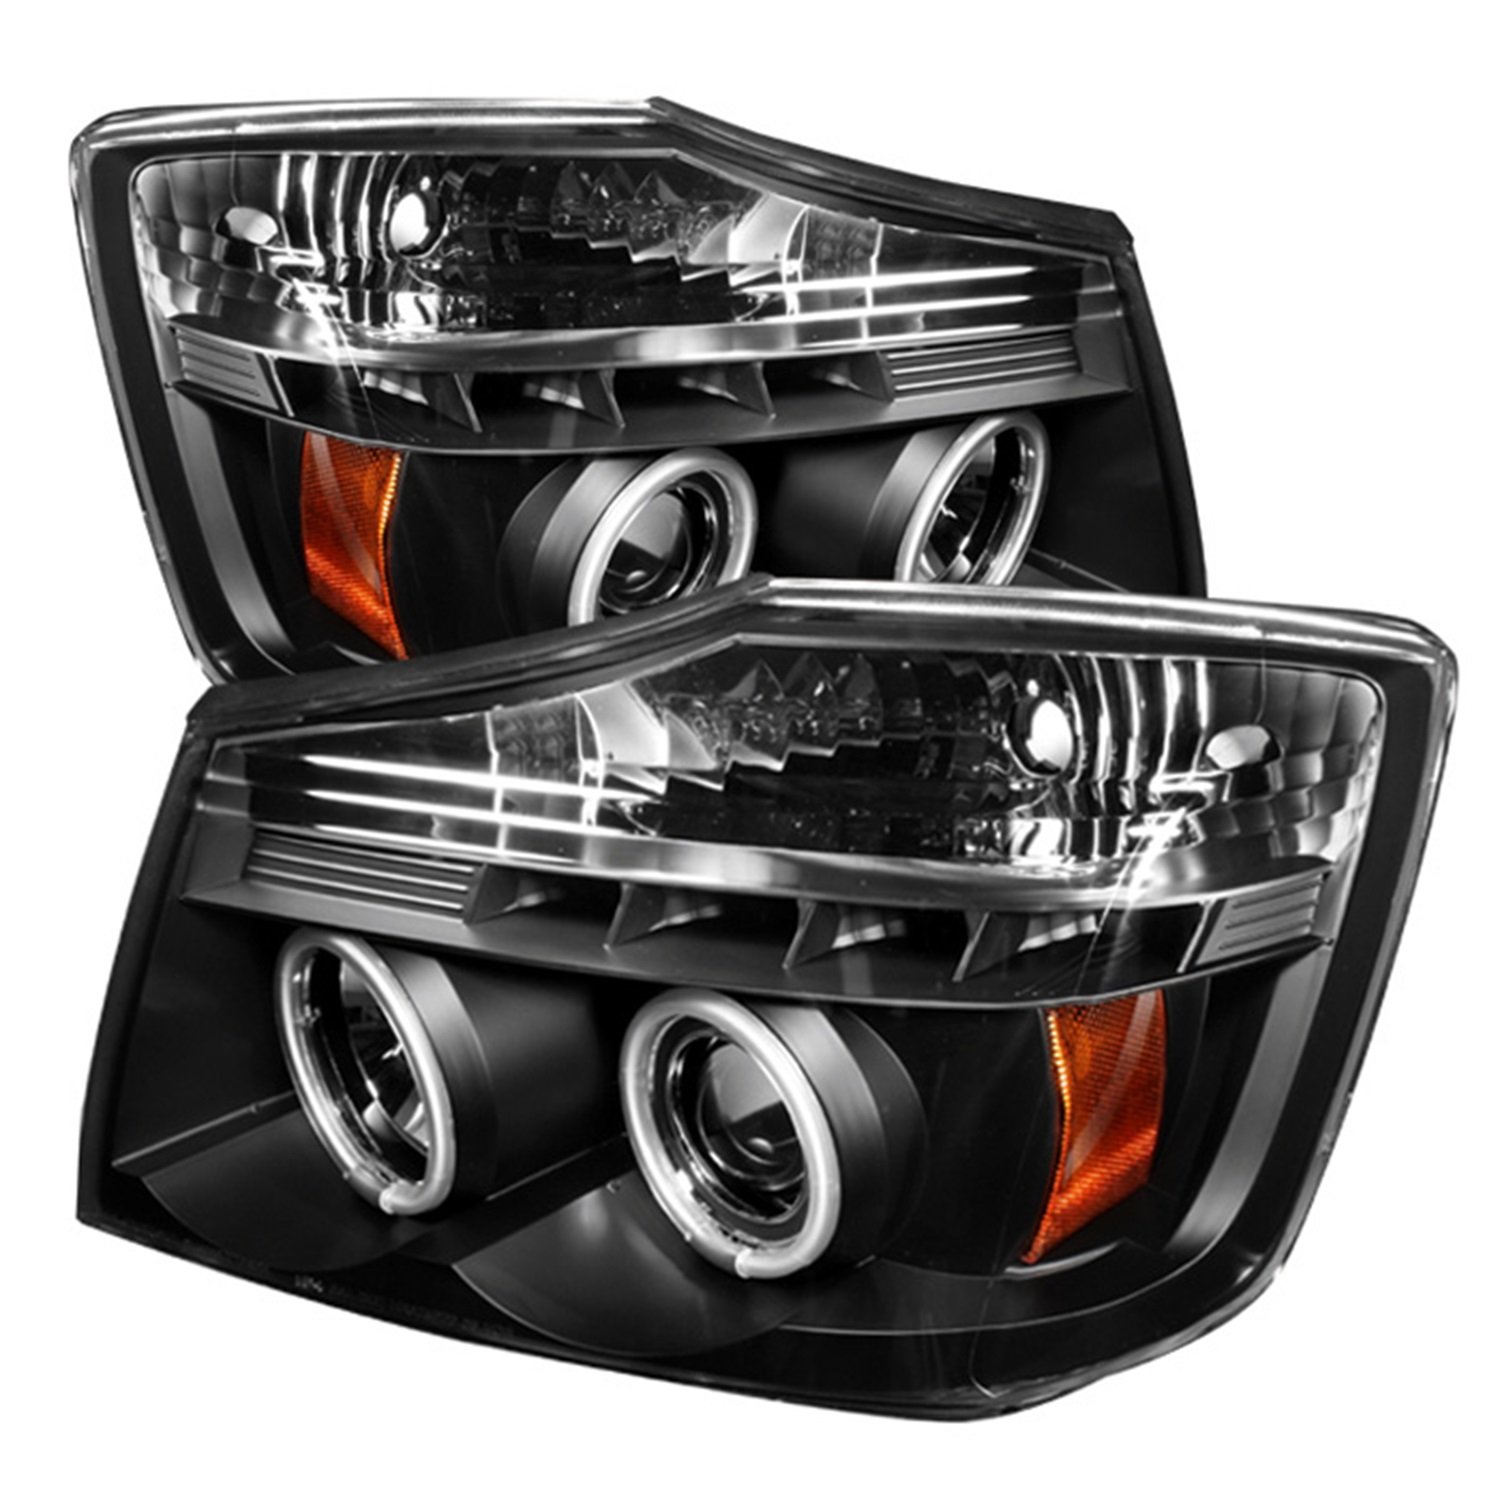 Amazon.com: Spyder Auto Nissan Titan/Nissan Armada Black CCFL LED Projector Headlight: Automotive